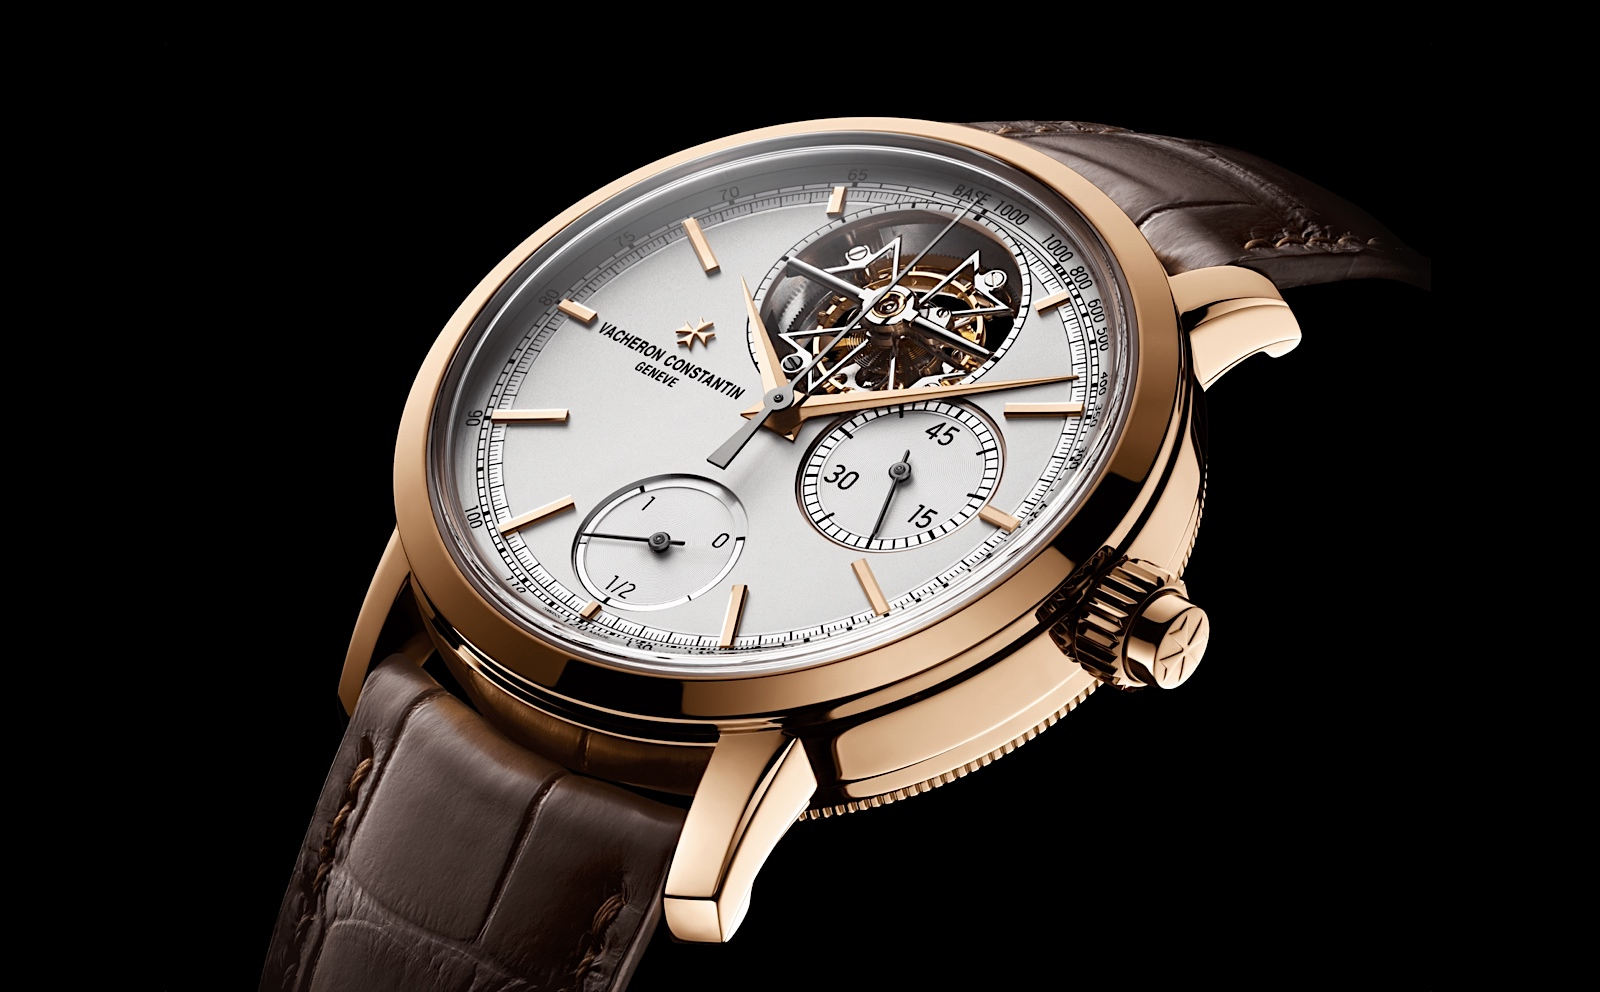 Vacheron Constantin Traditionnelle Tourbillon Chronograph - side